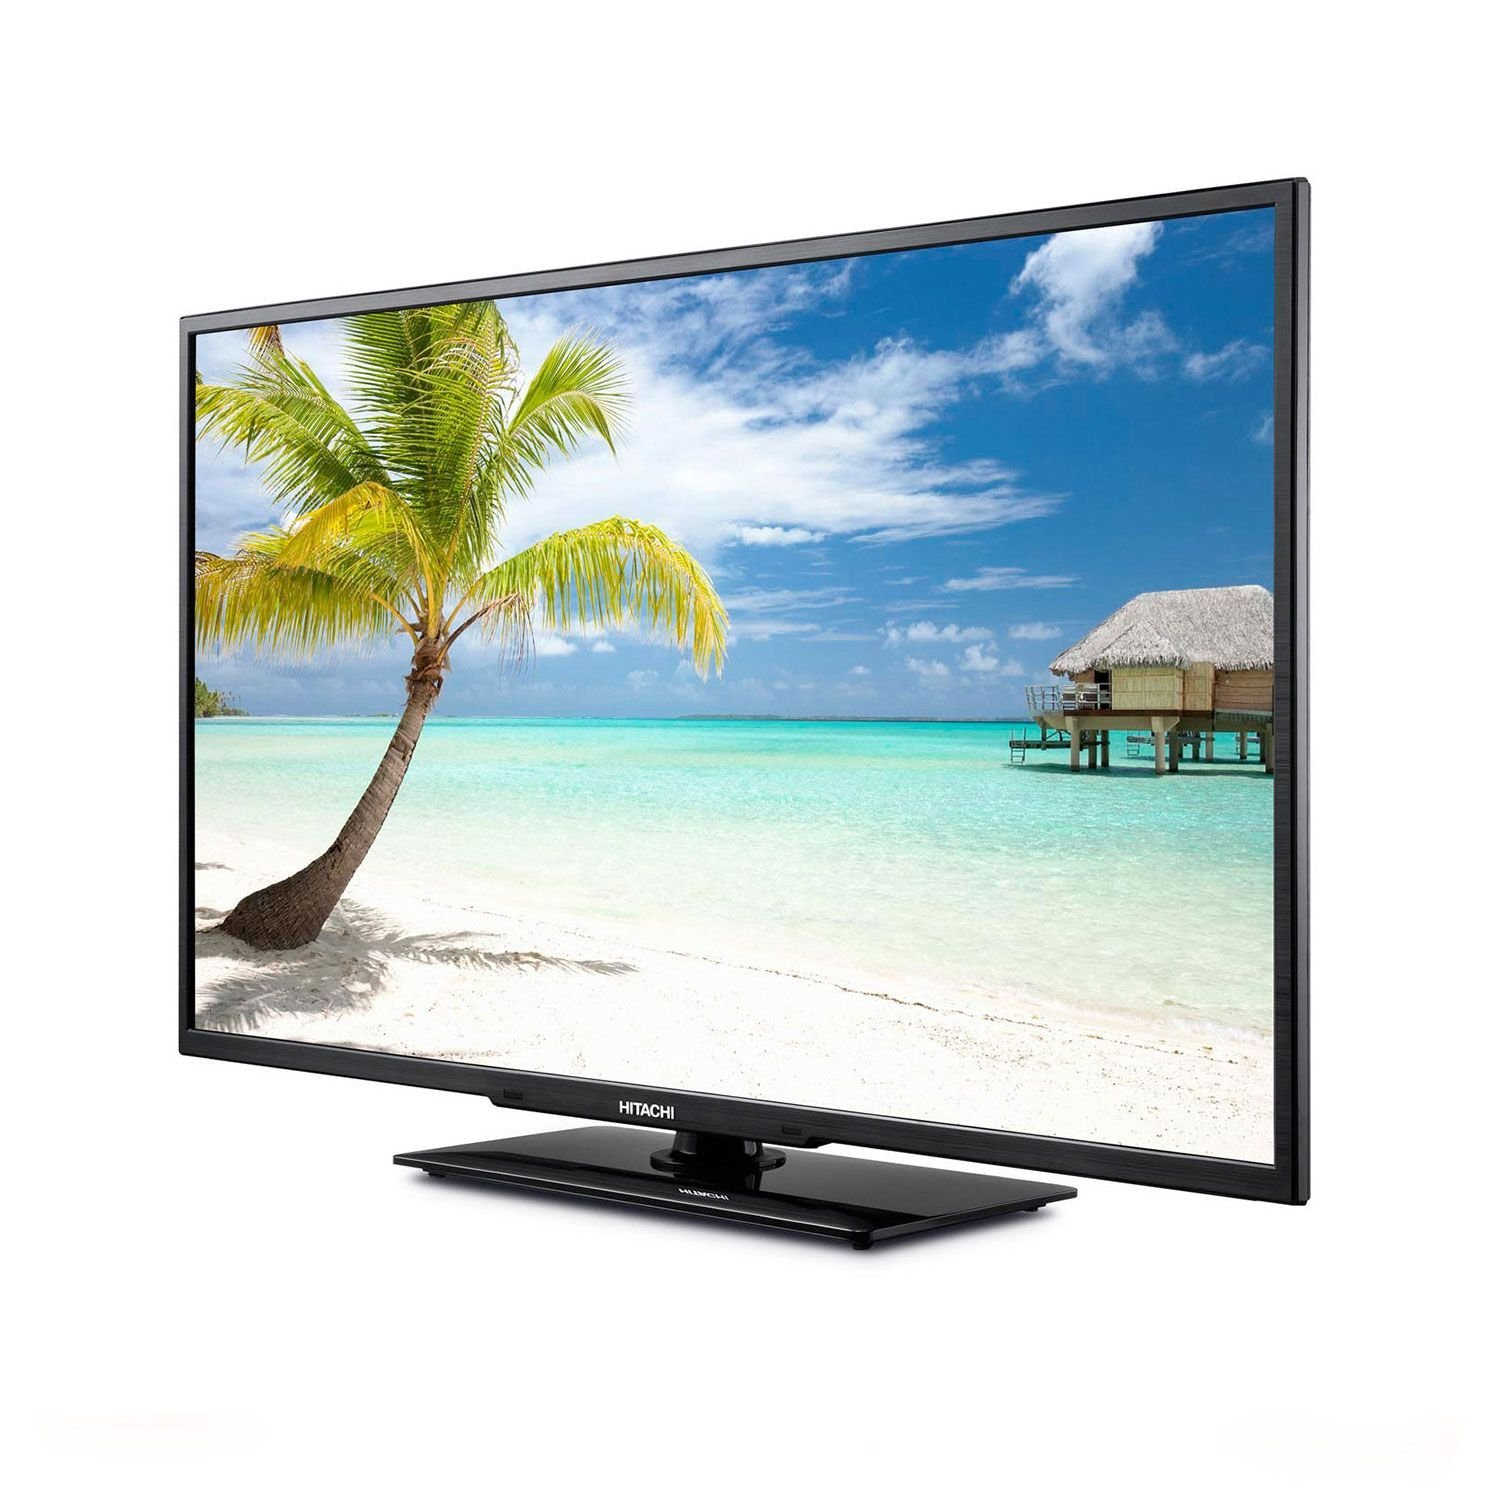 Hitachi LE50H508 50inch LED HDTV